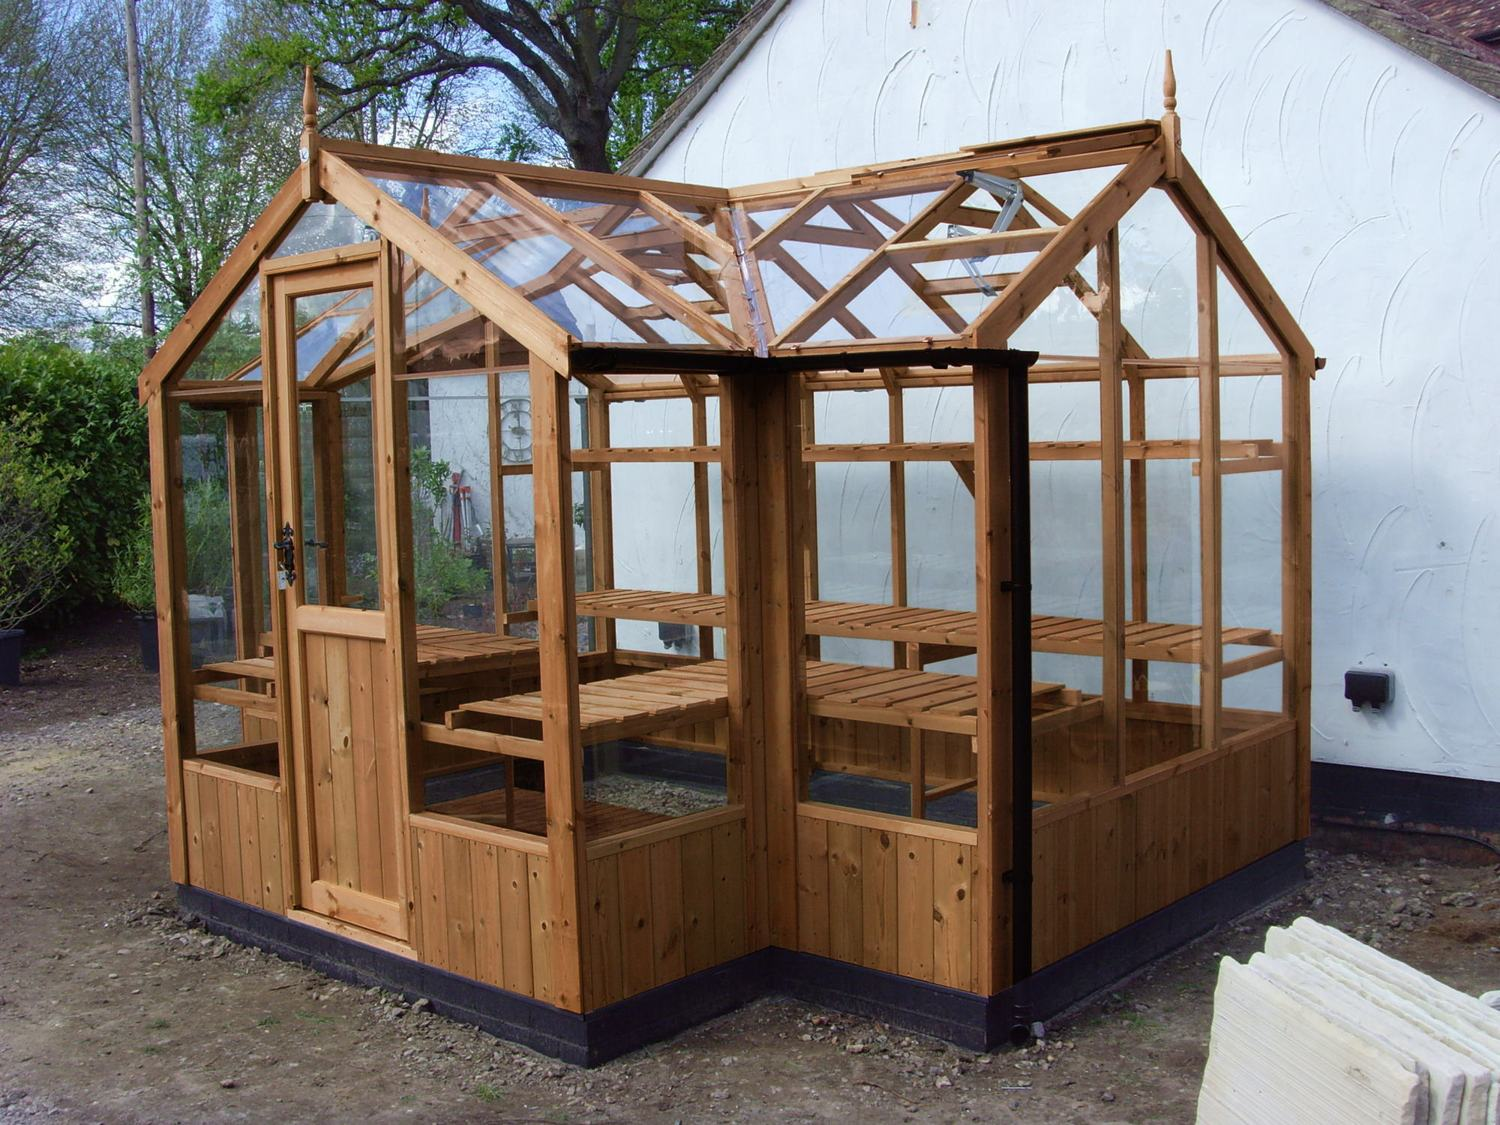 Swallow cygnet 6x11 t shaped wooden greenhouse - How to build a wooden greenhouse ...